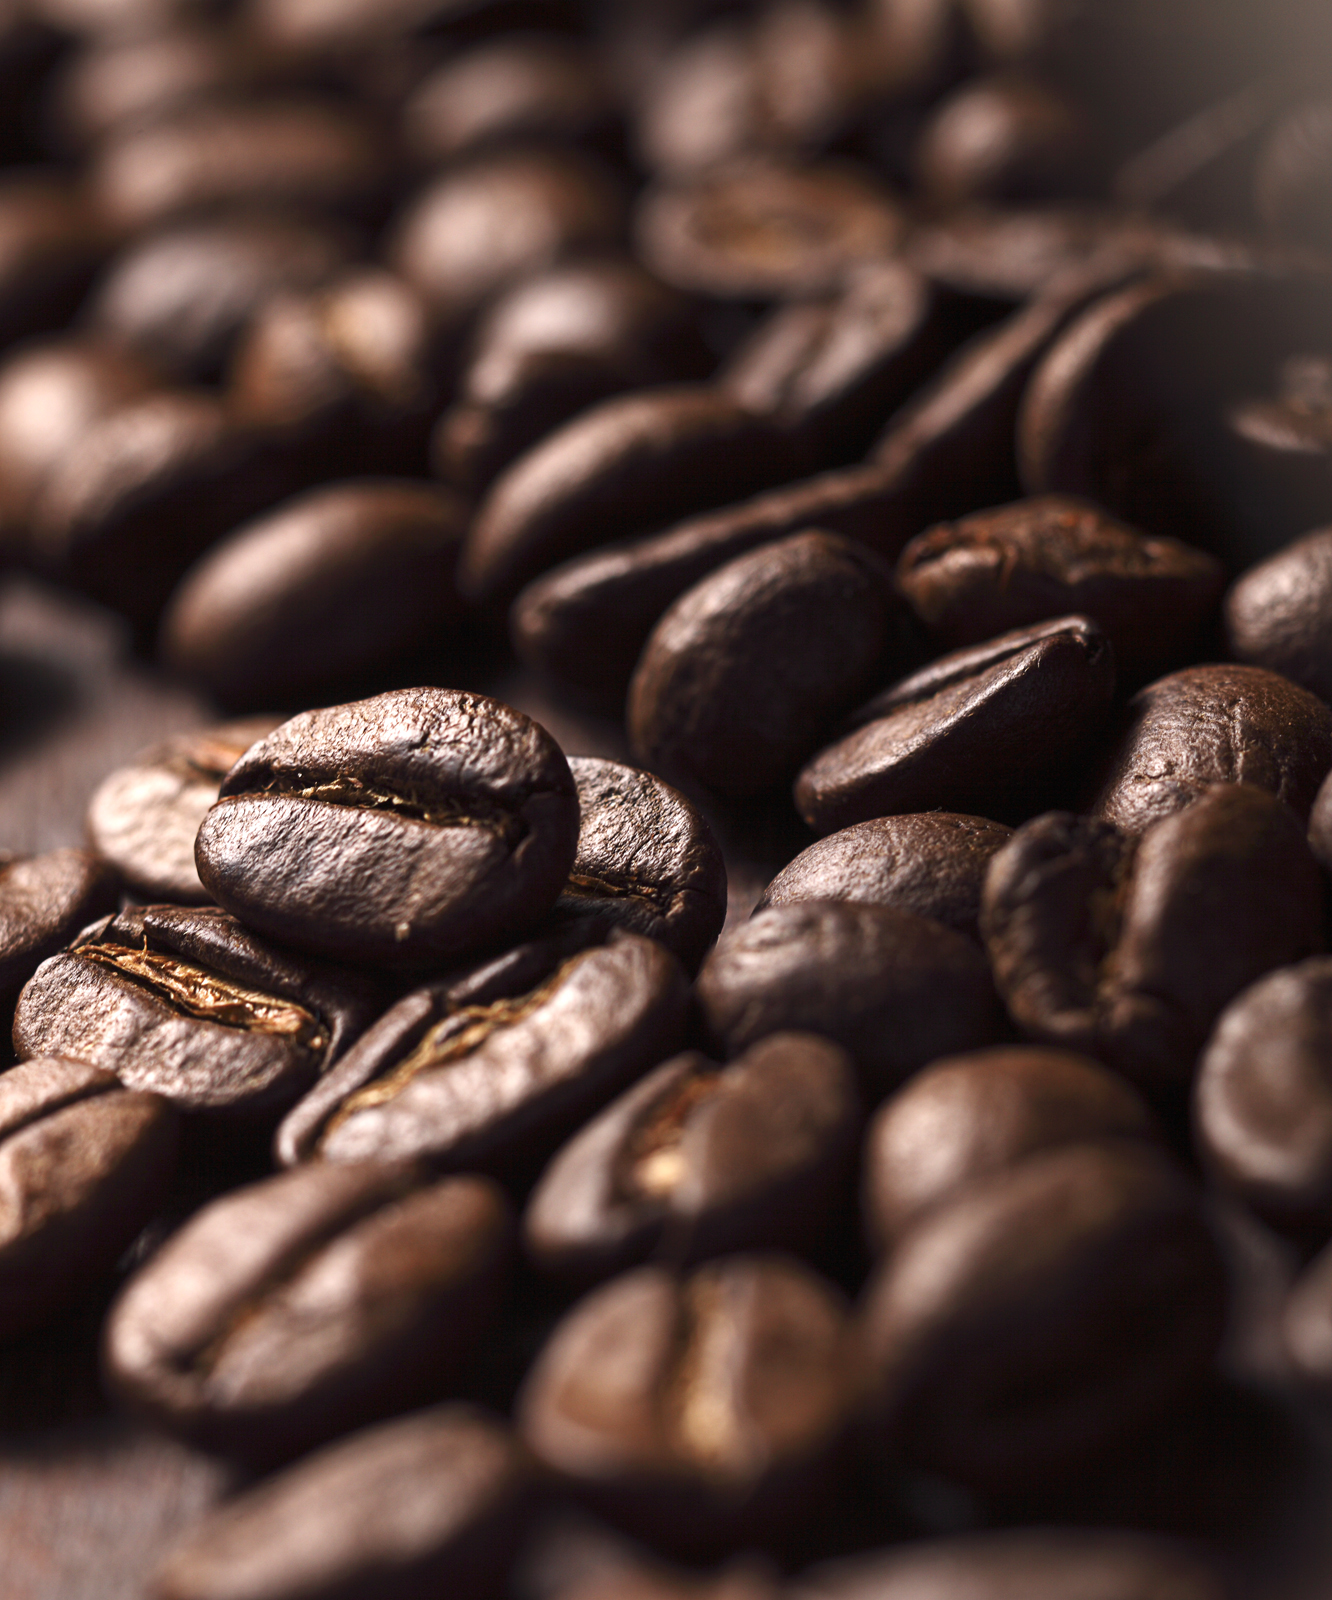 Coffee beans,Foodstyling,Bru,Nescafe,Esther Amanna